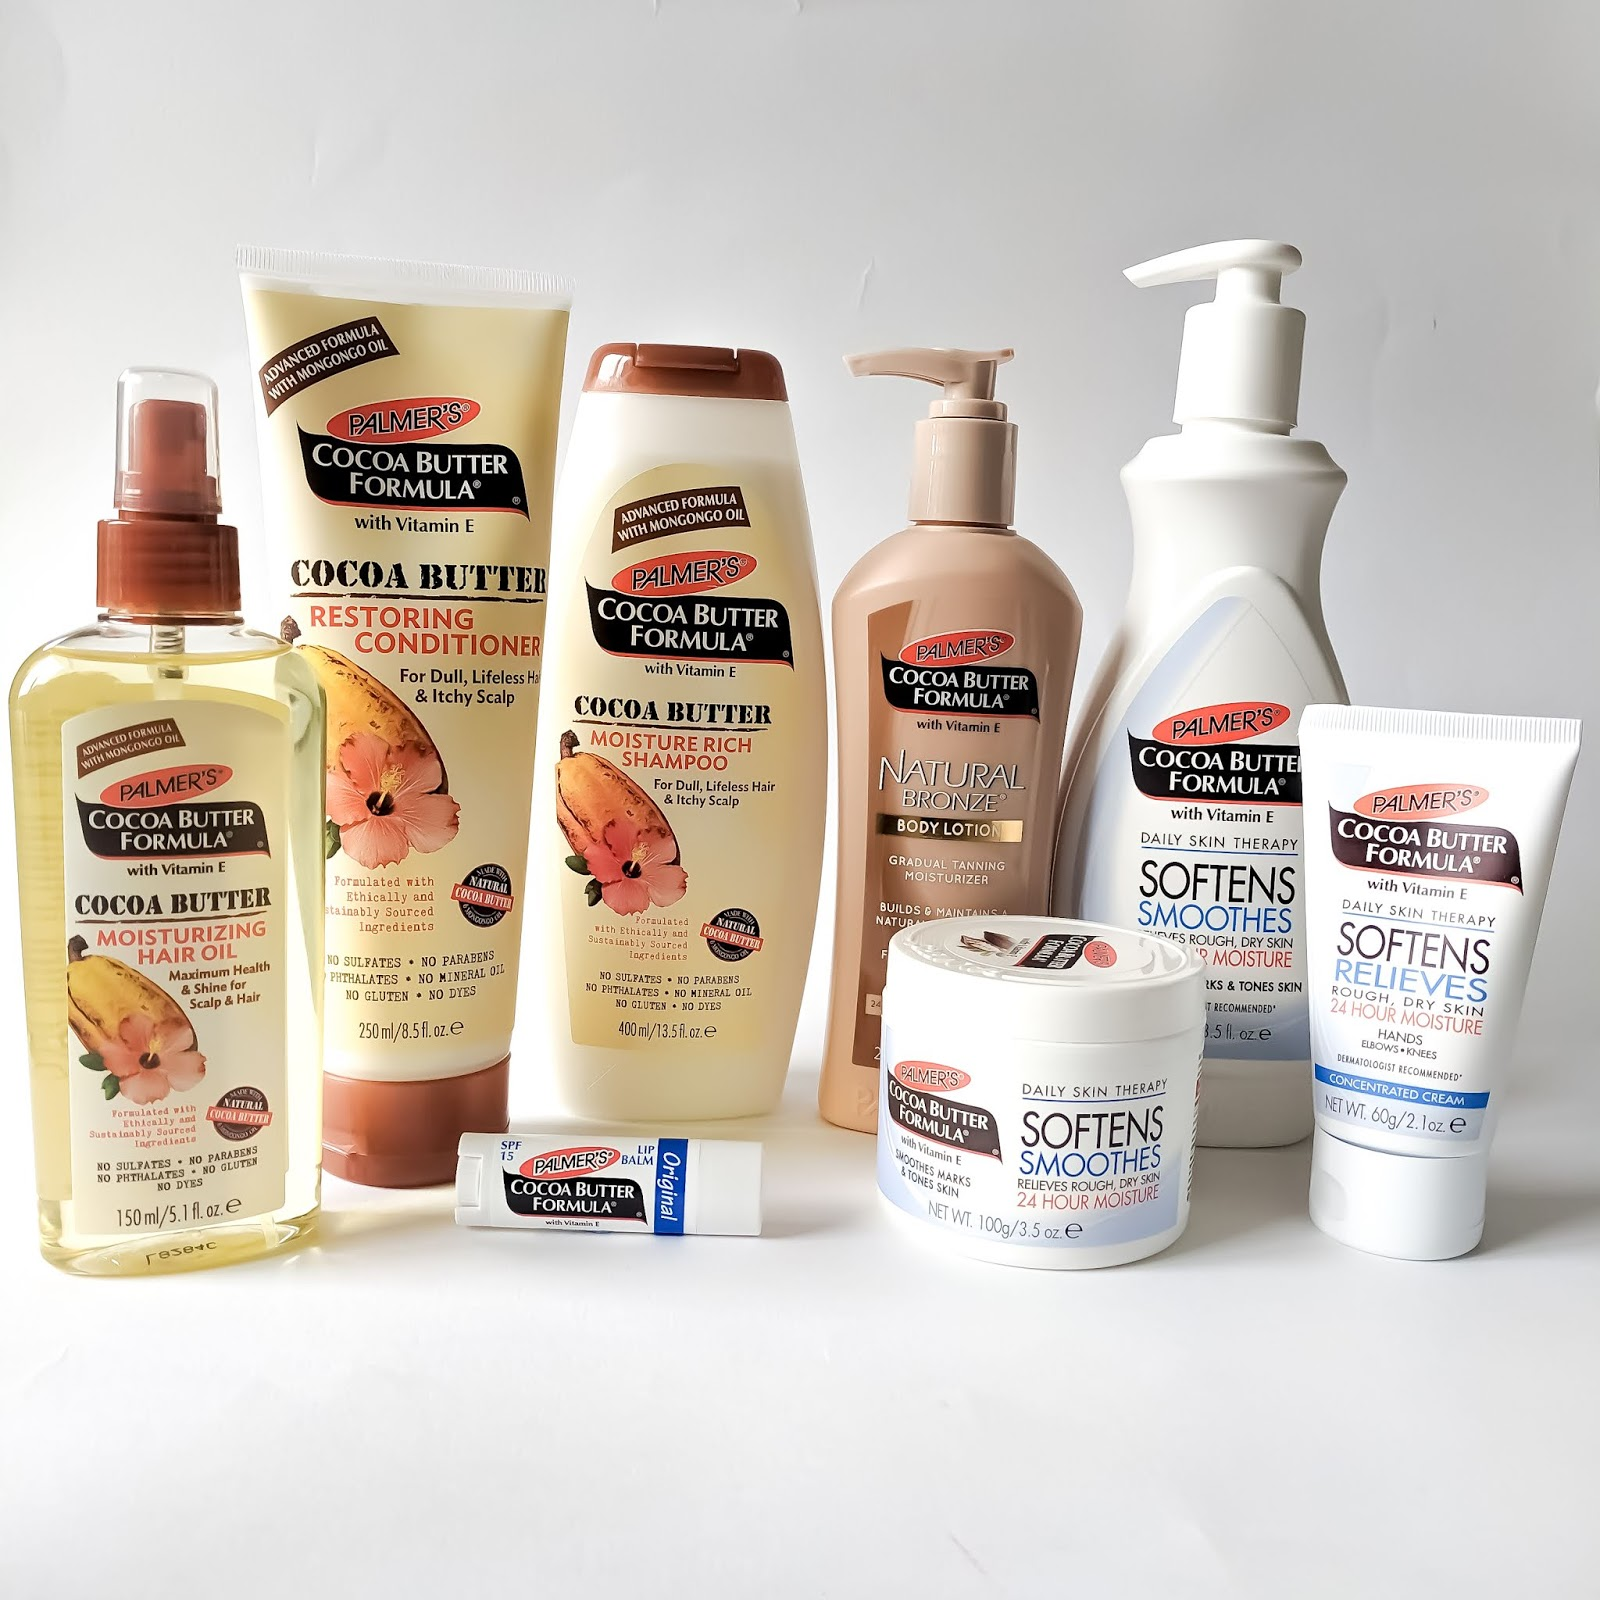 a collection of Palmer's Cocoa Butter products